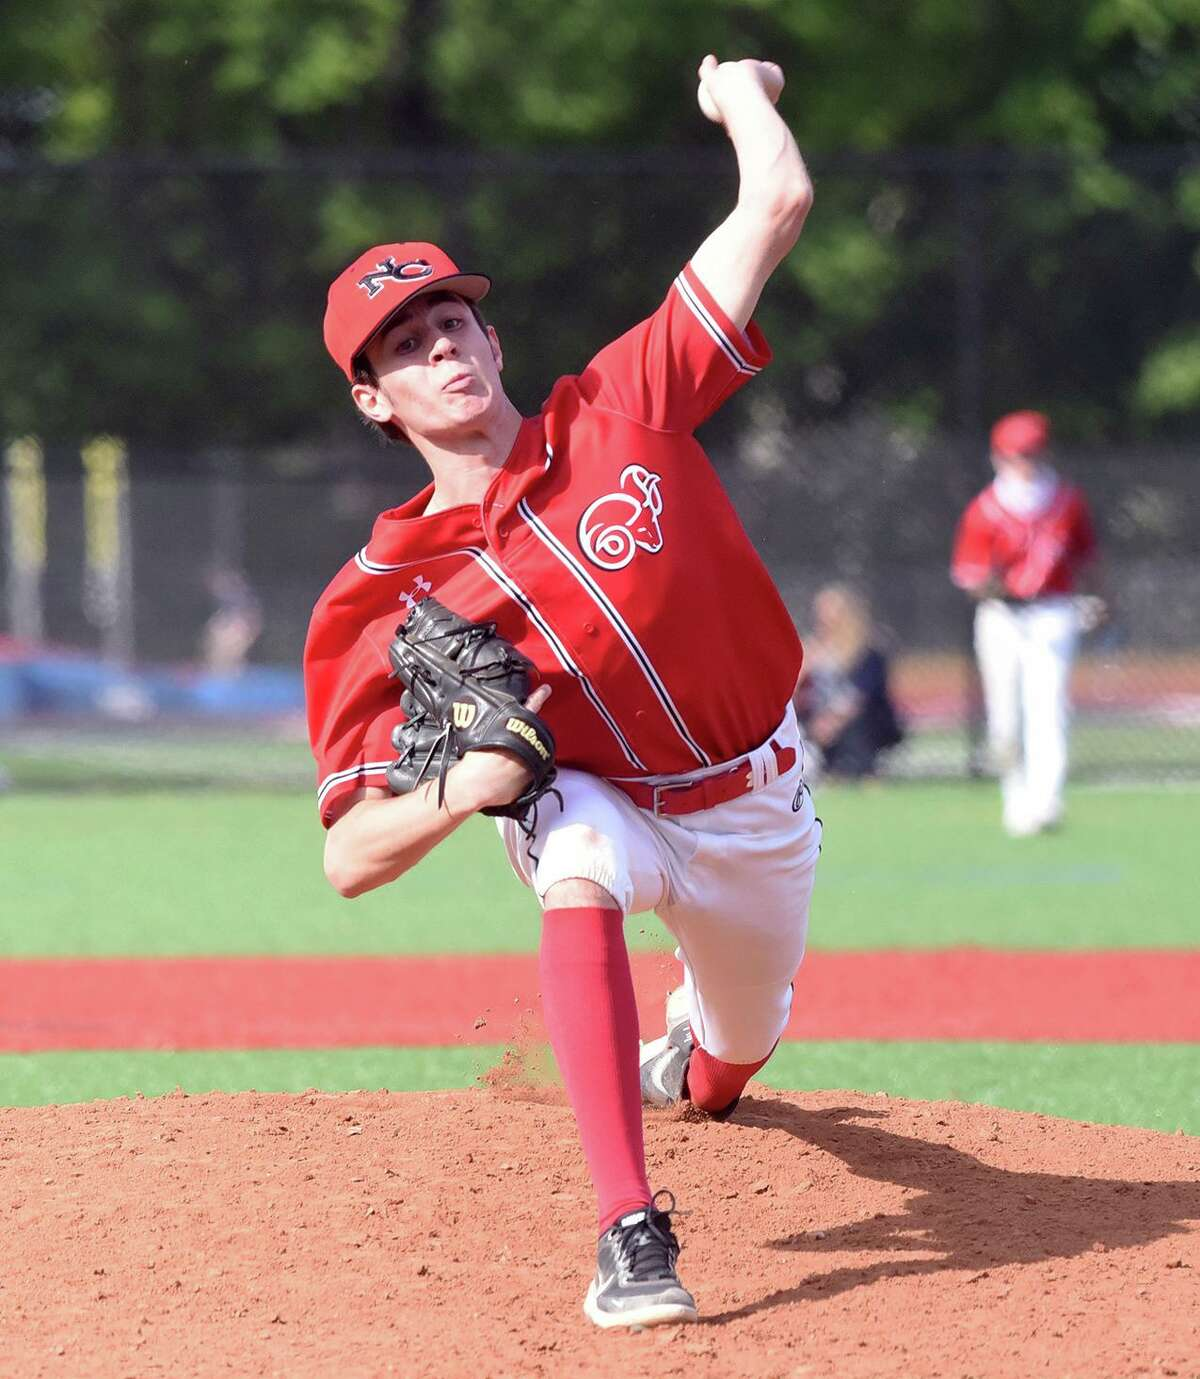 The New Canaan and Brien McMahon baseball teams compete at BMHS in Norwalk on Thursday, May 6, 2021